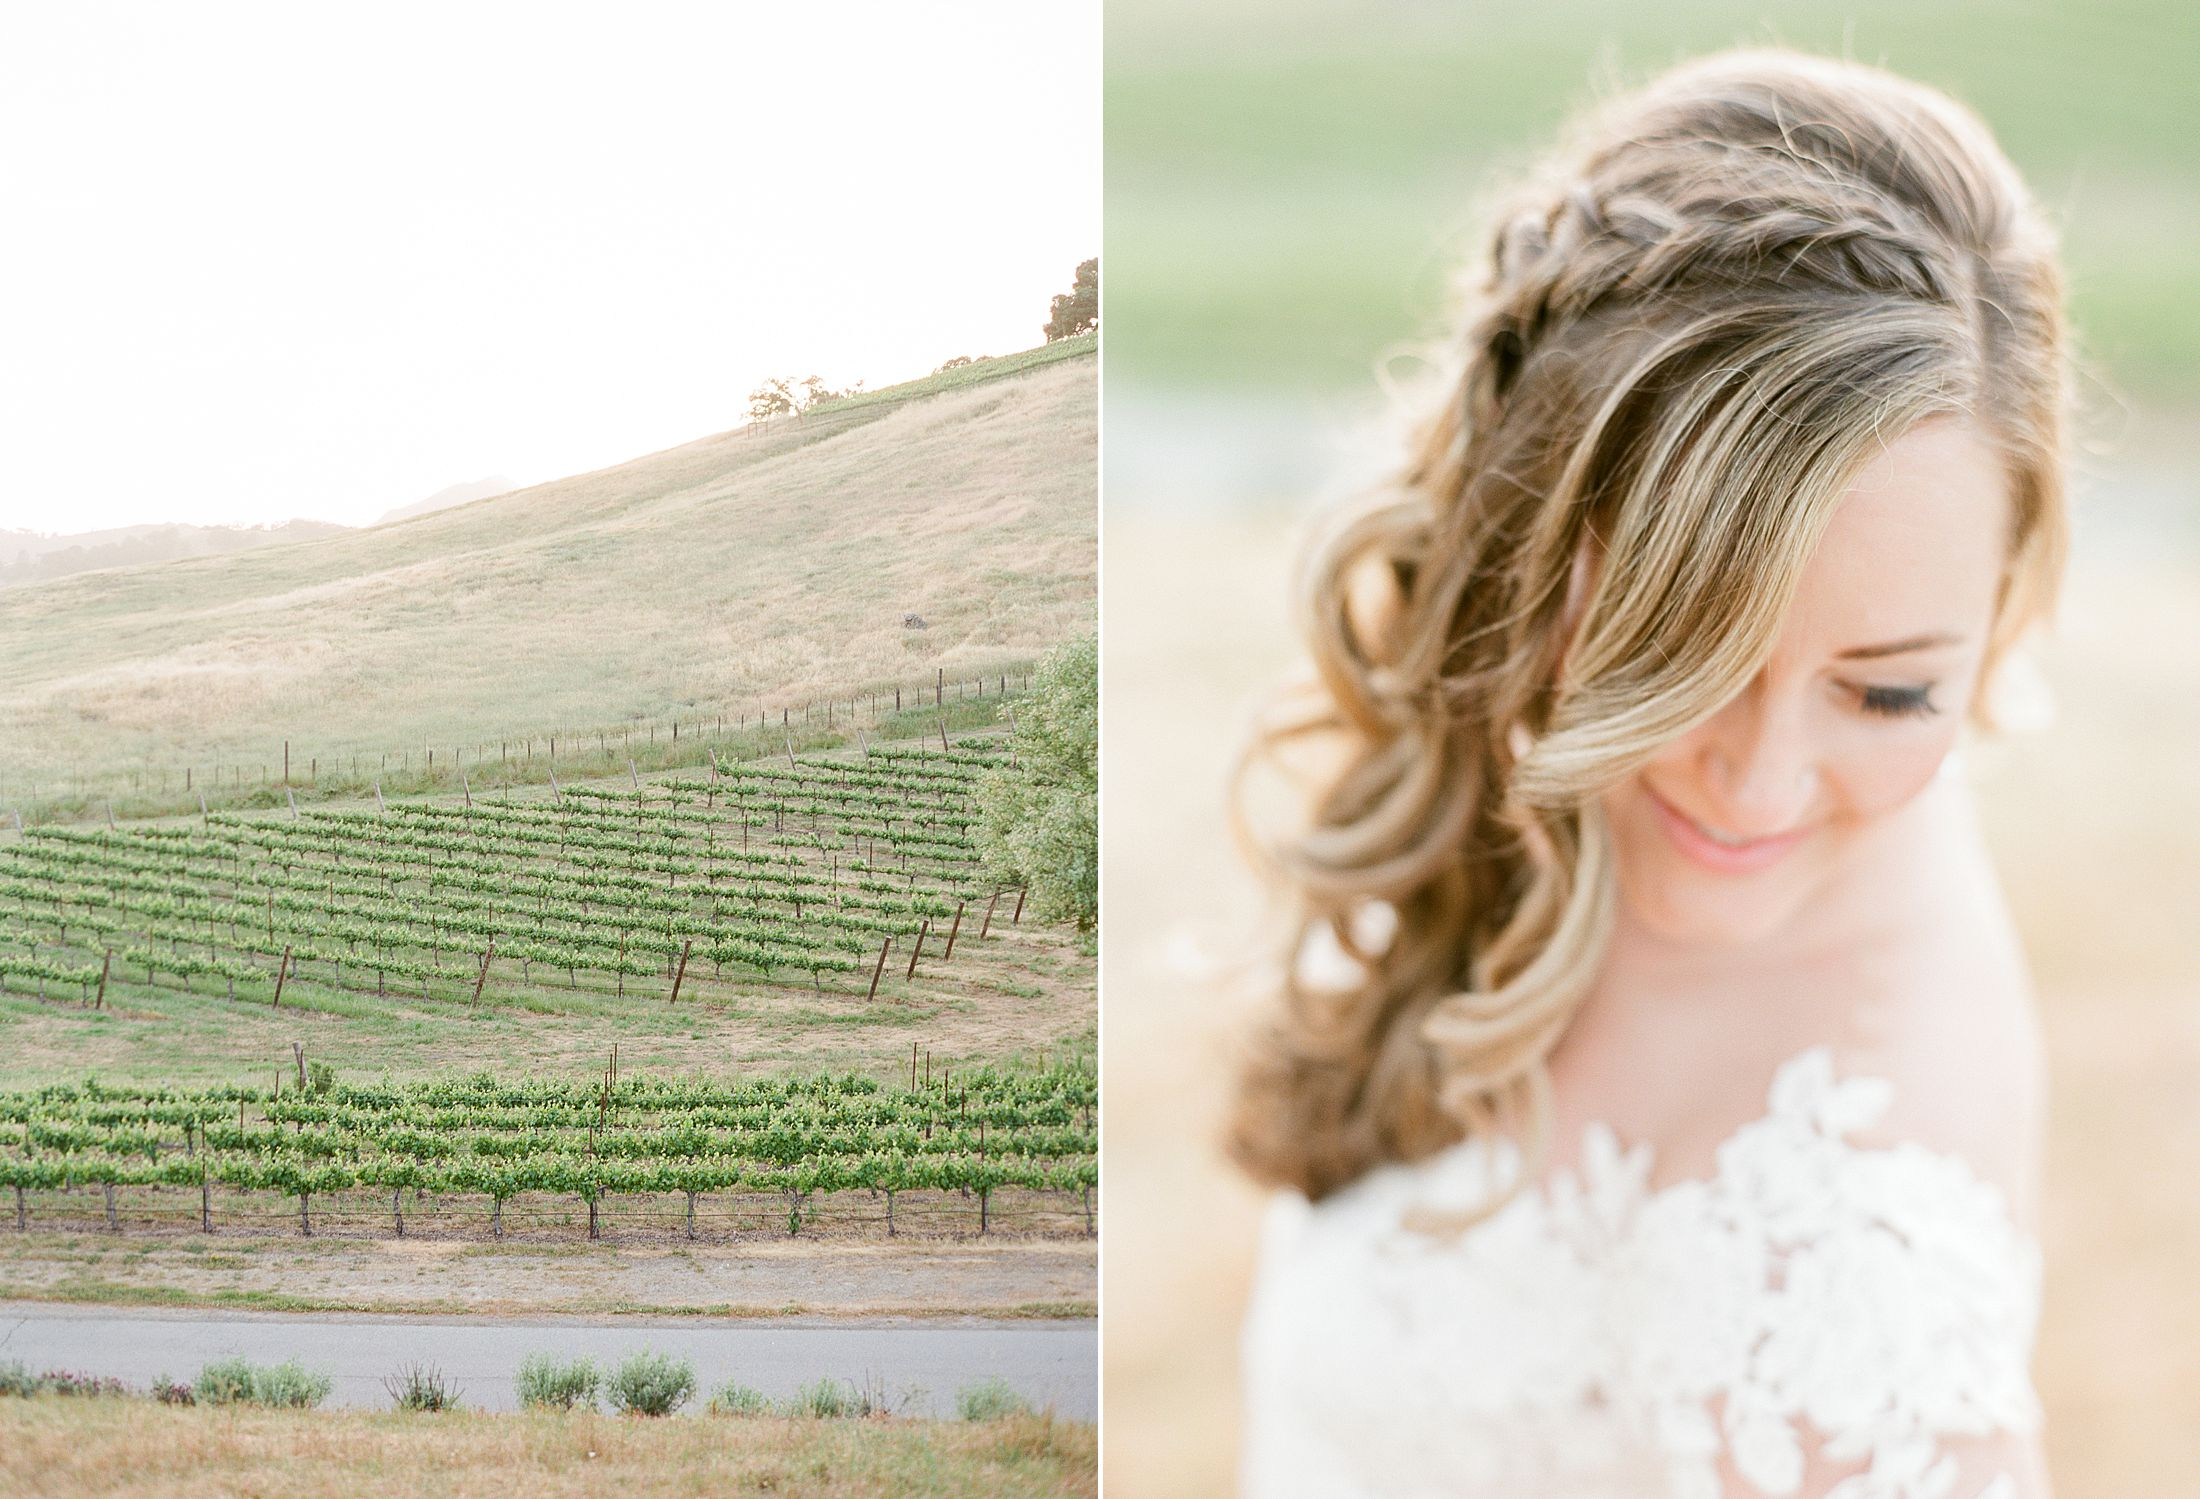 Clos LaChance Winery Wedding - Ashley Baumgartner - Kat & Kurt - Morgan Hill Wedding - Winery Wedding - Bay Area Photographer - Sacramento Wedding Photographer_0065.jpg